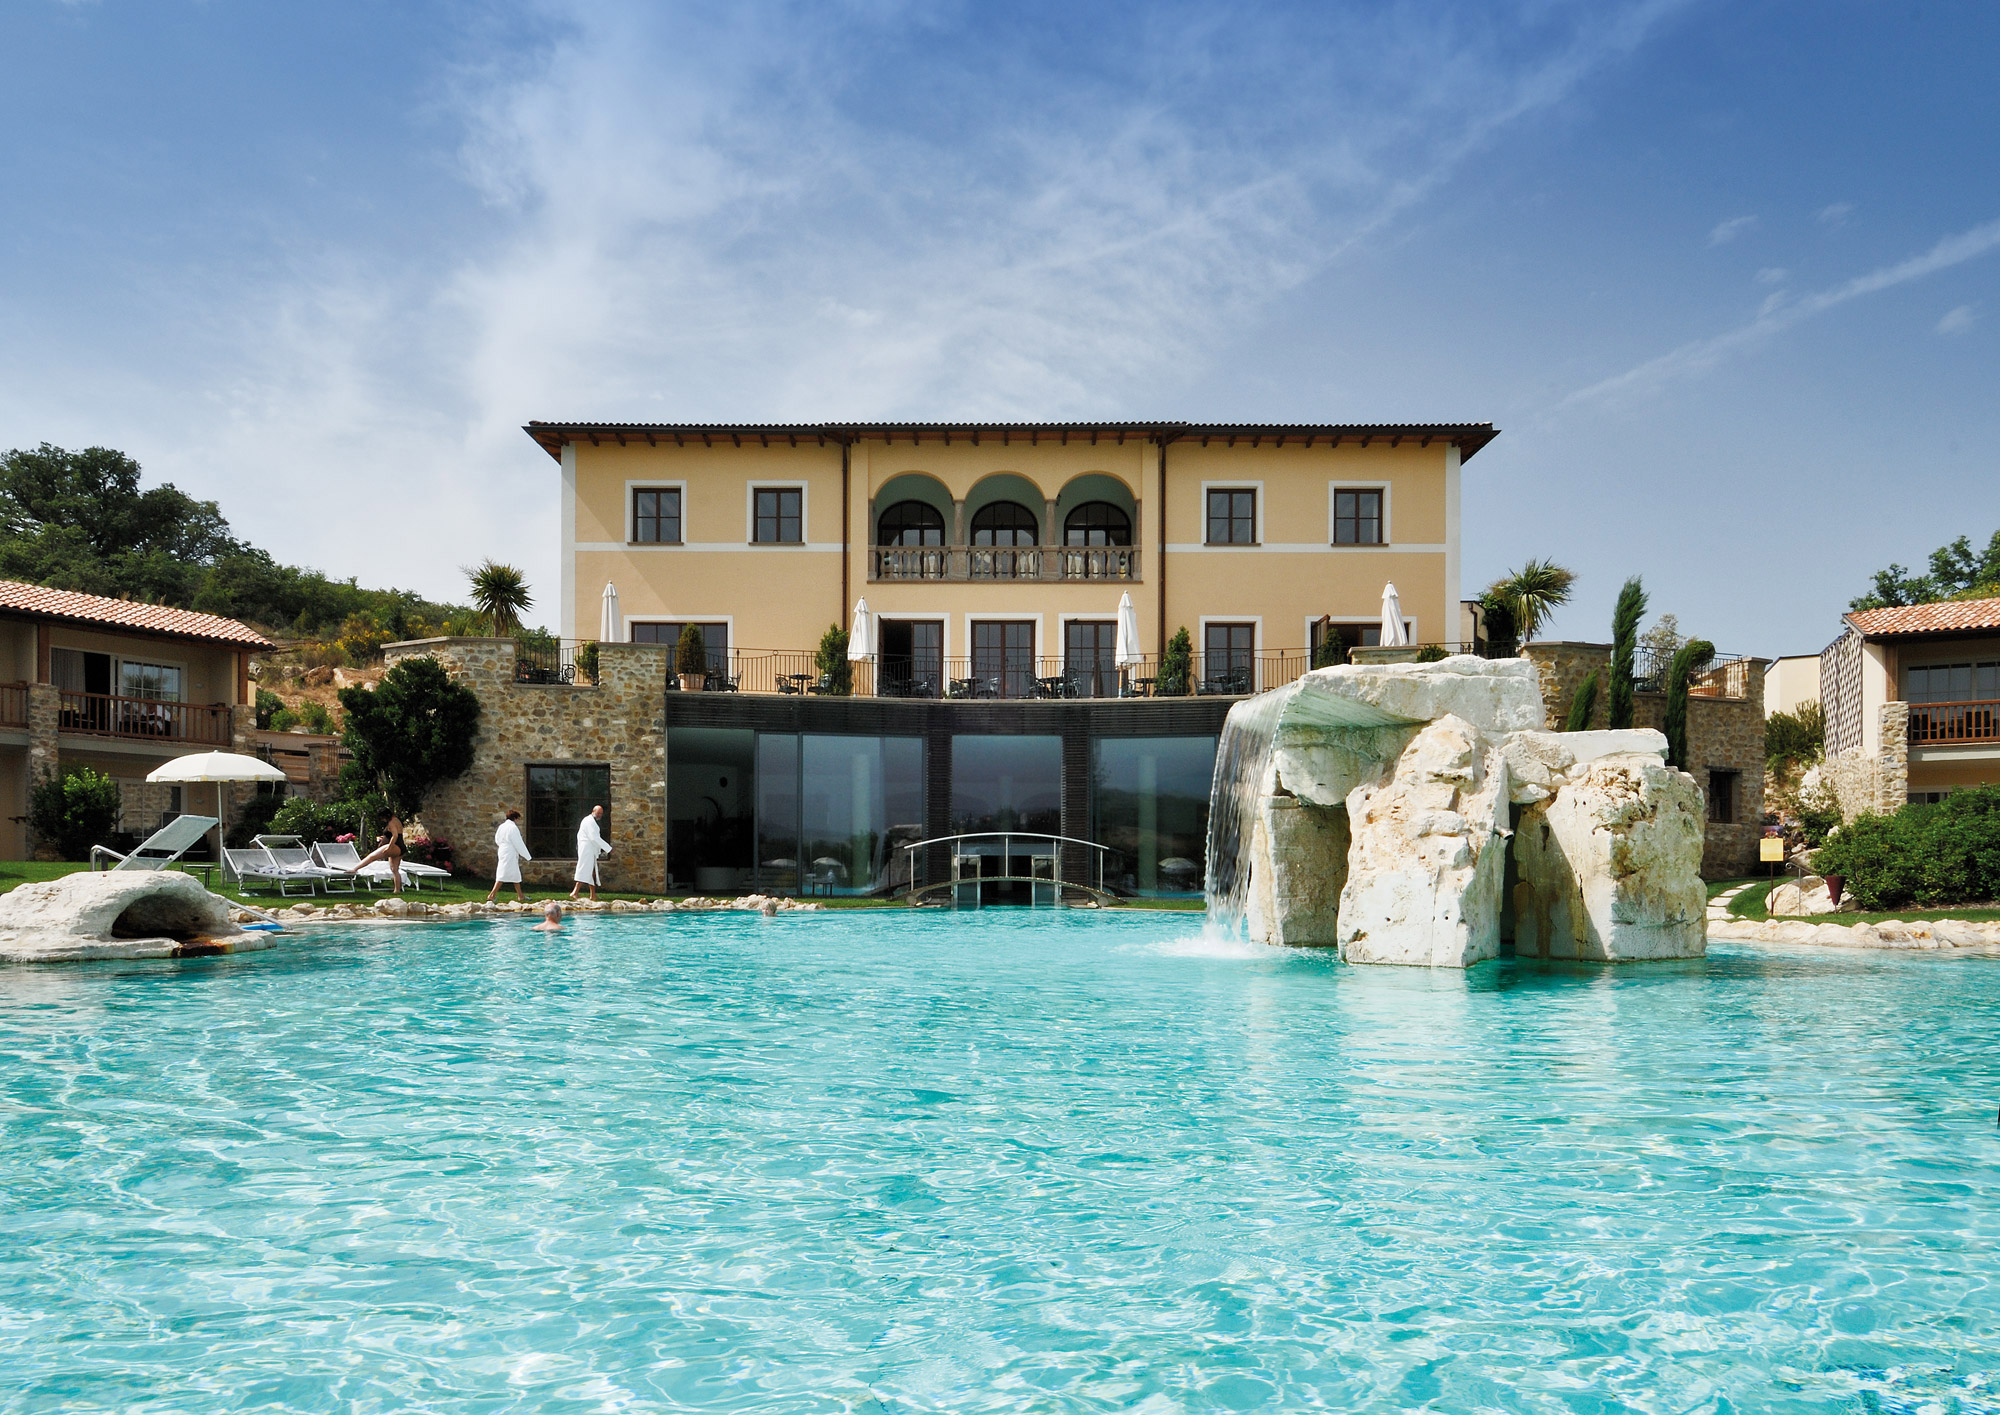 Spa hotel tuscany u star adler thermae